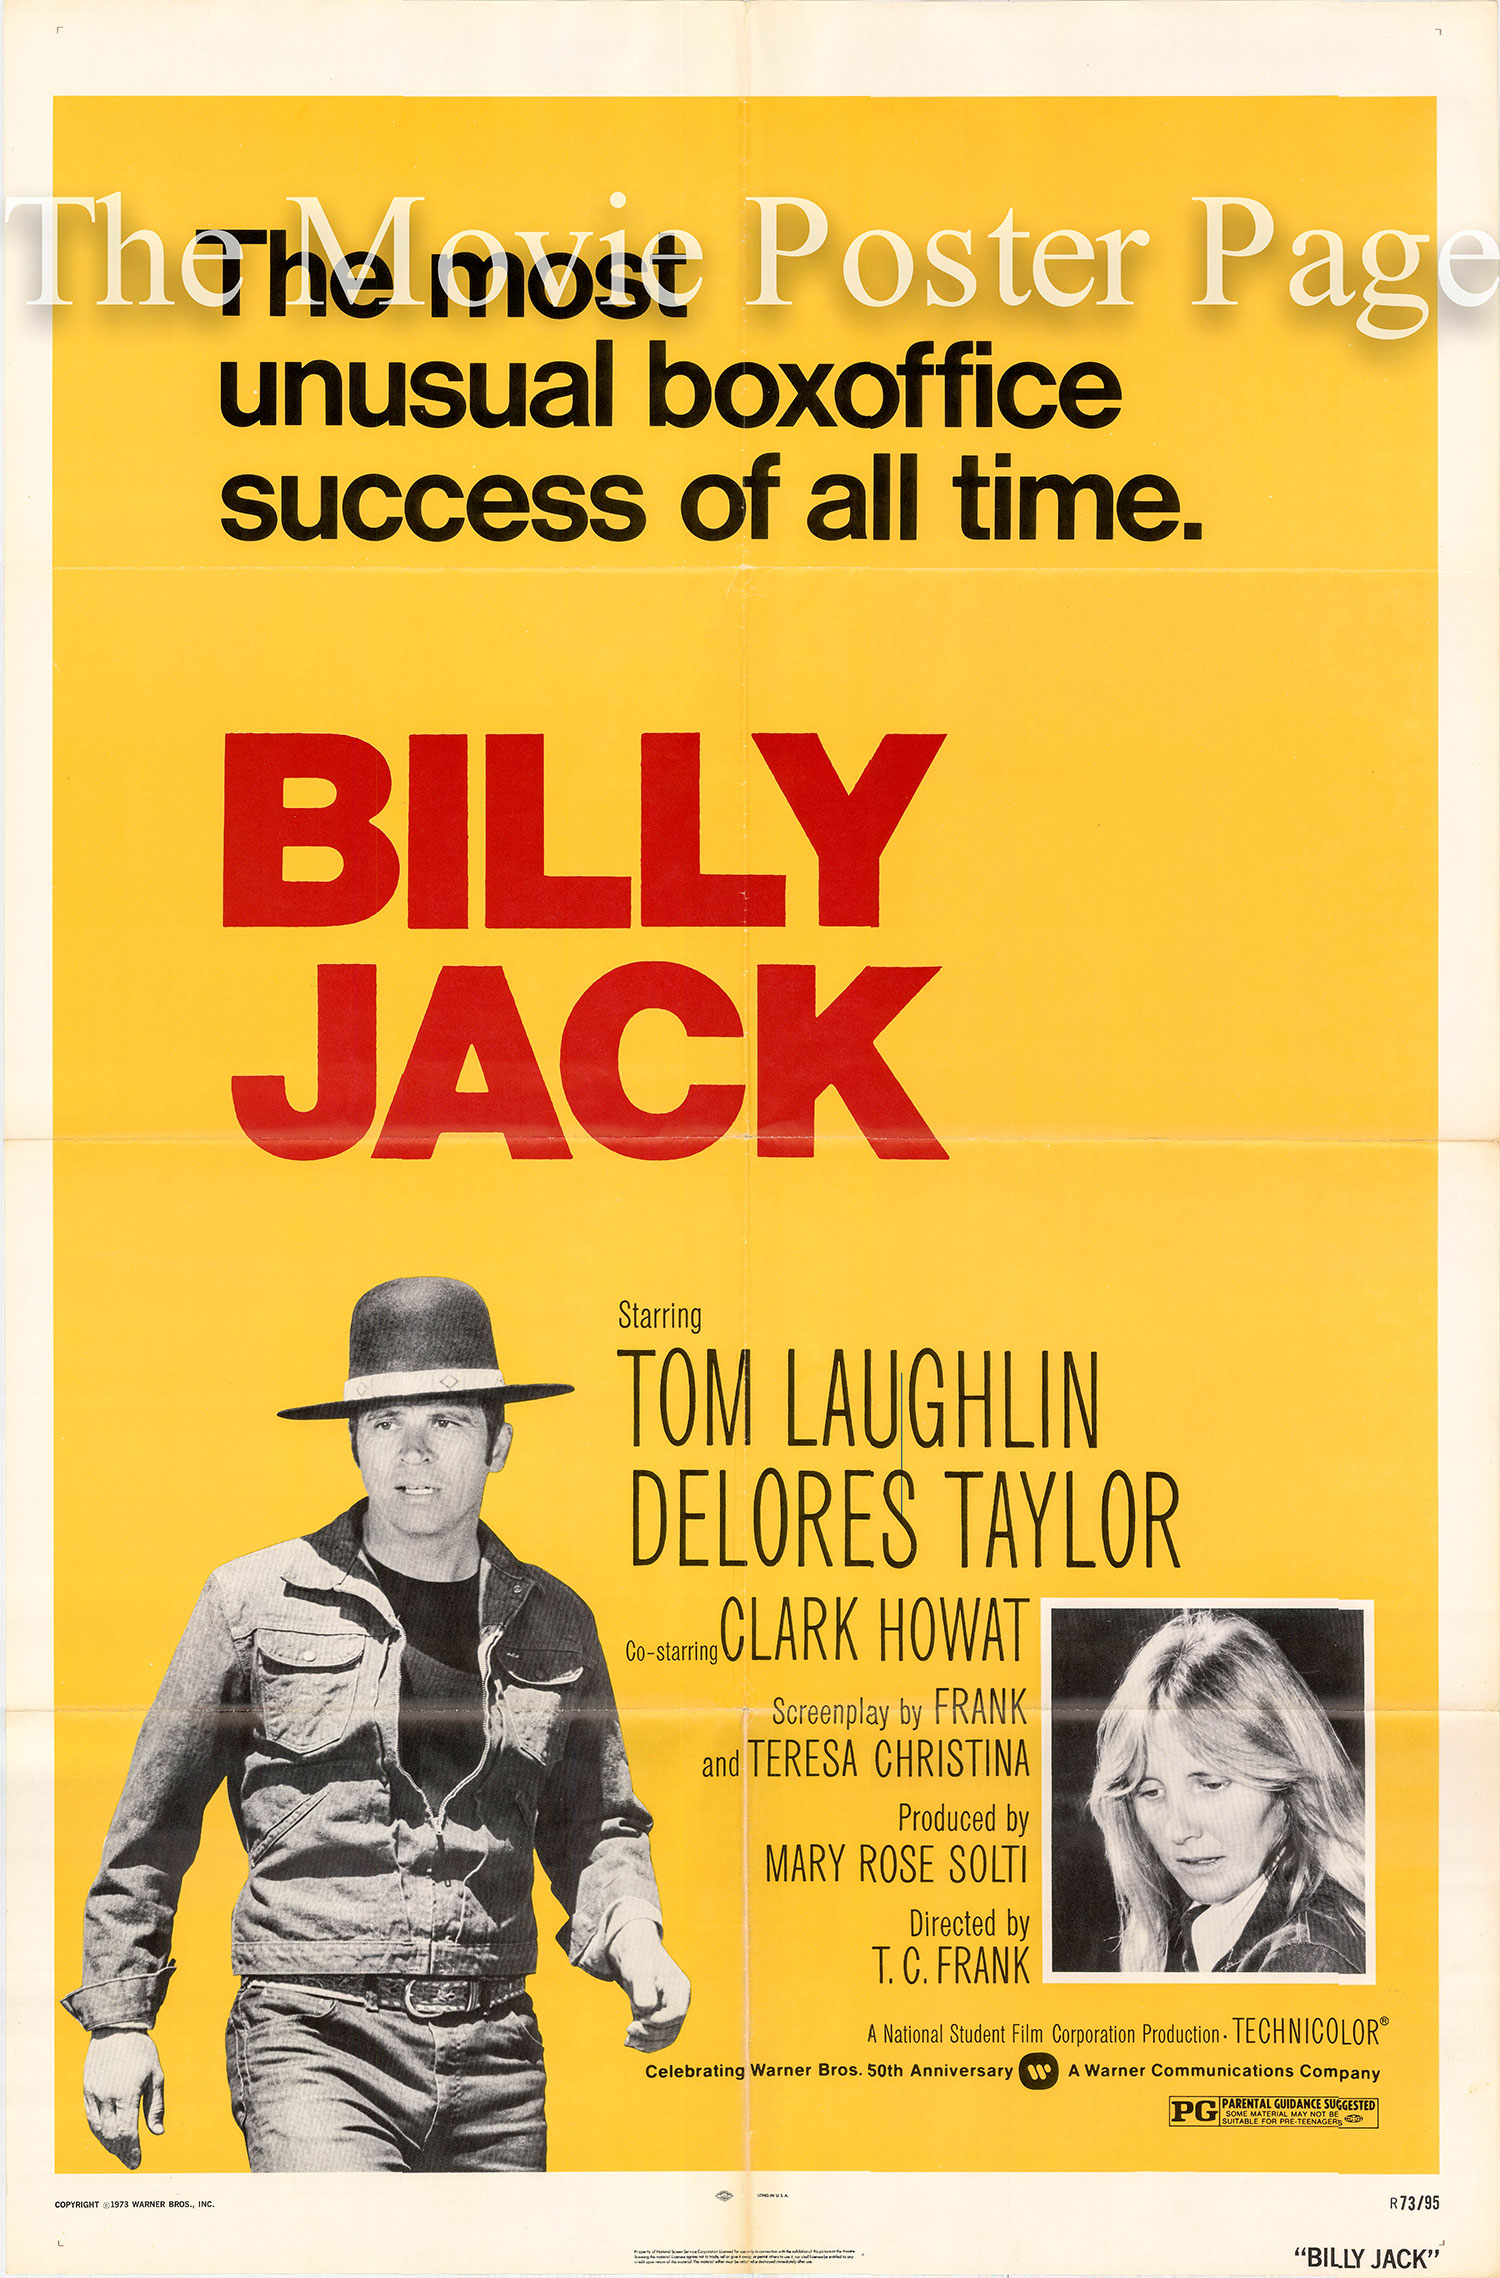 Pictured is a US one-sheet poster for a 1973 rerelease of the 1971 Tom Laughlin film Billy Jack starring Tom Laughlin as Bily Jack.